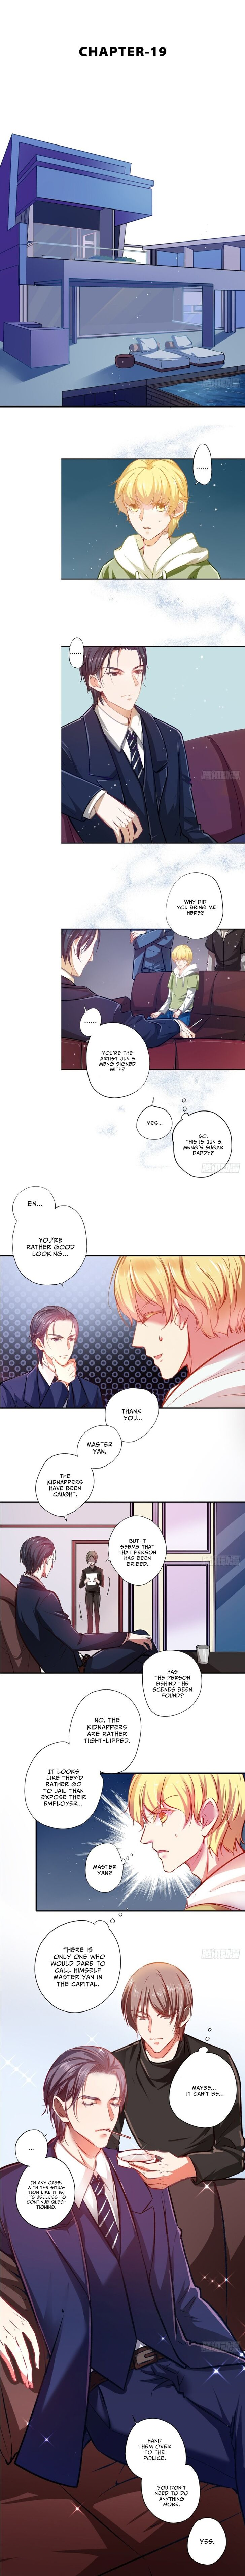 LOVABLE AND DARK WIFE - chapter 19 - #2